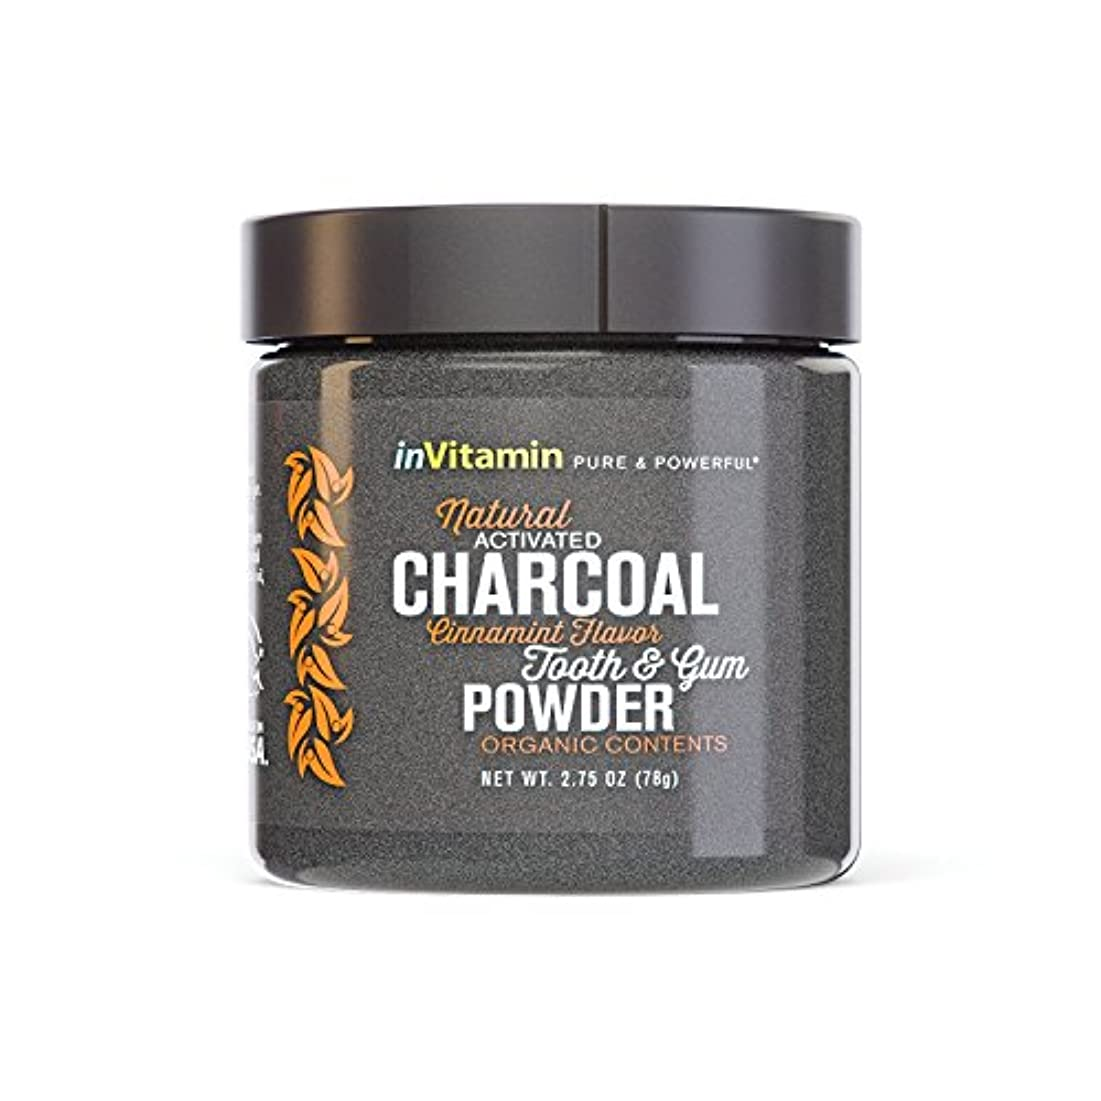 歯磨き粉 Natural Tooth & Gum Powder with Activated Charcoal (海外直送)